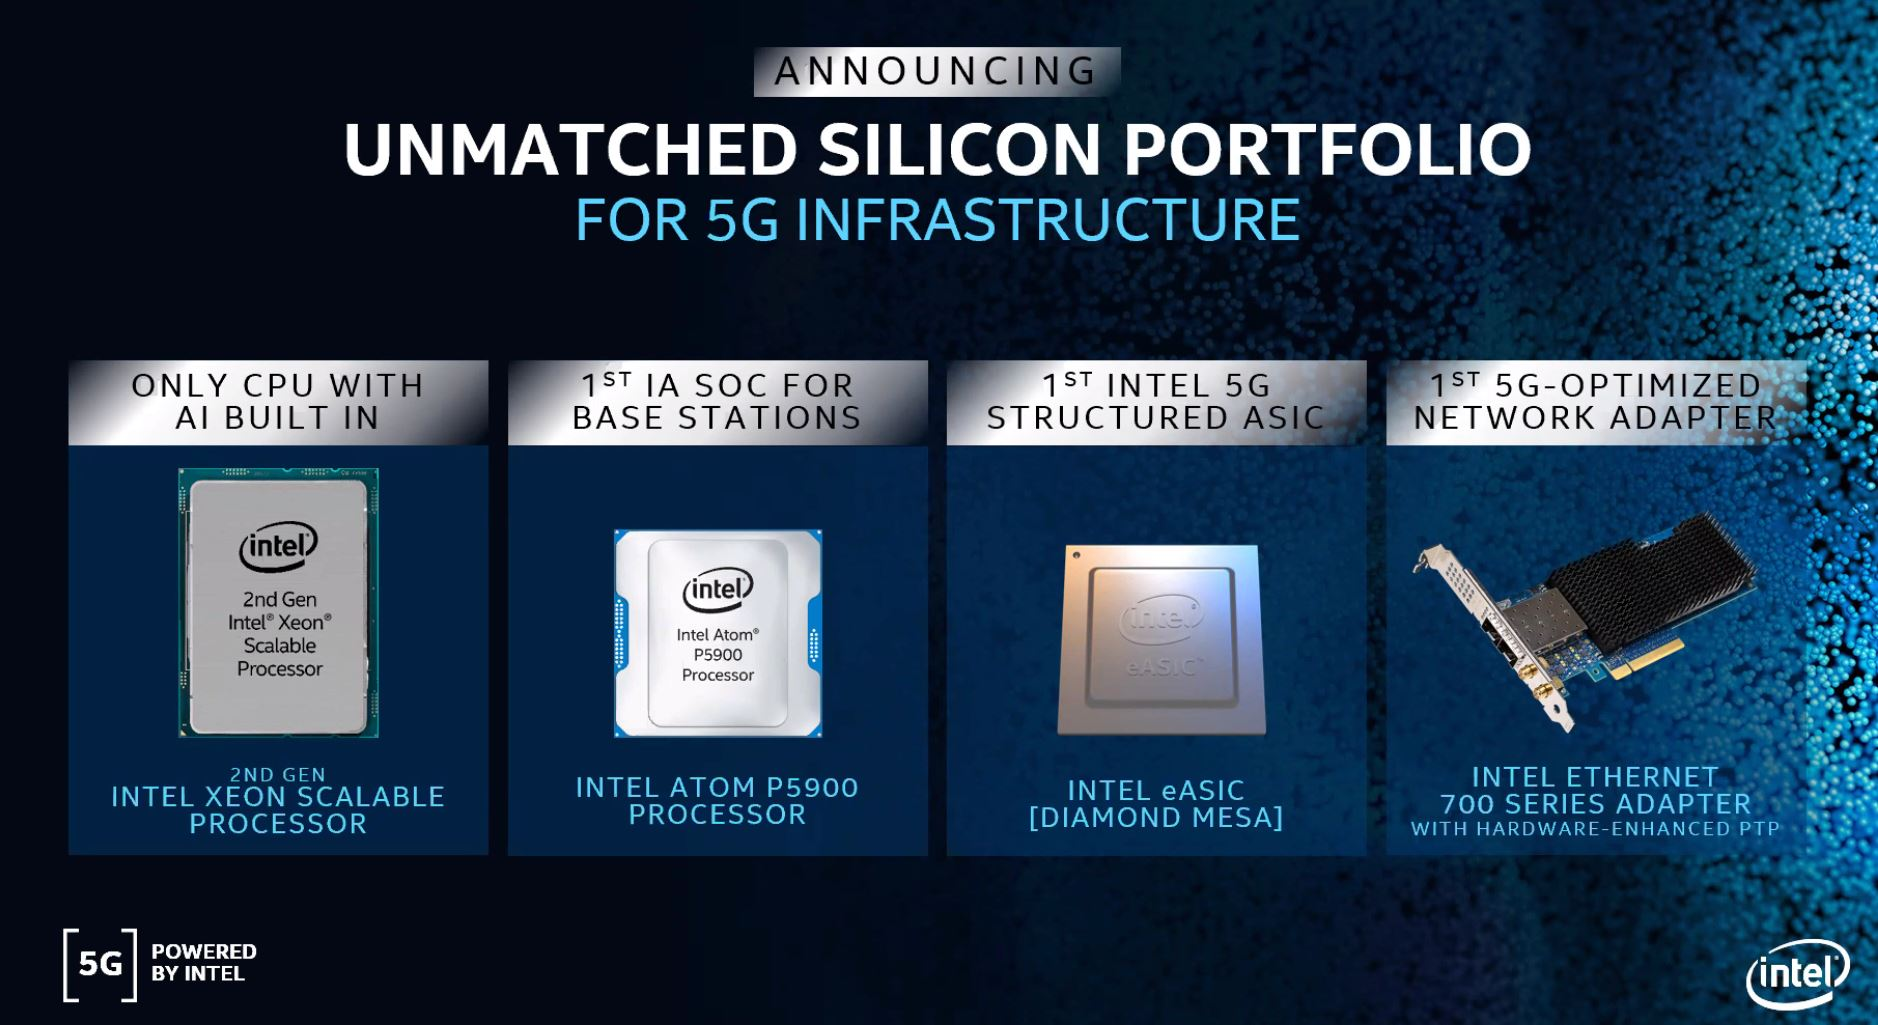 Intel Atom P5900 Series Along With EASIC Diamond Mesa And Intel Ethernet 700 With Hardware PTP